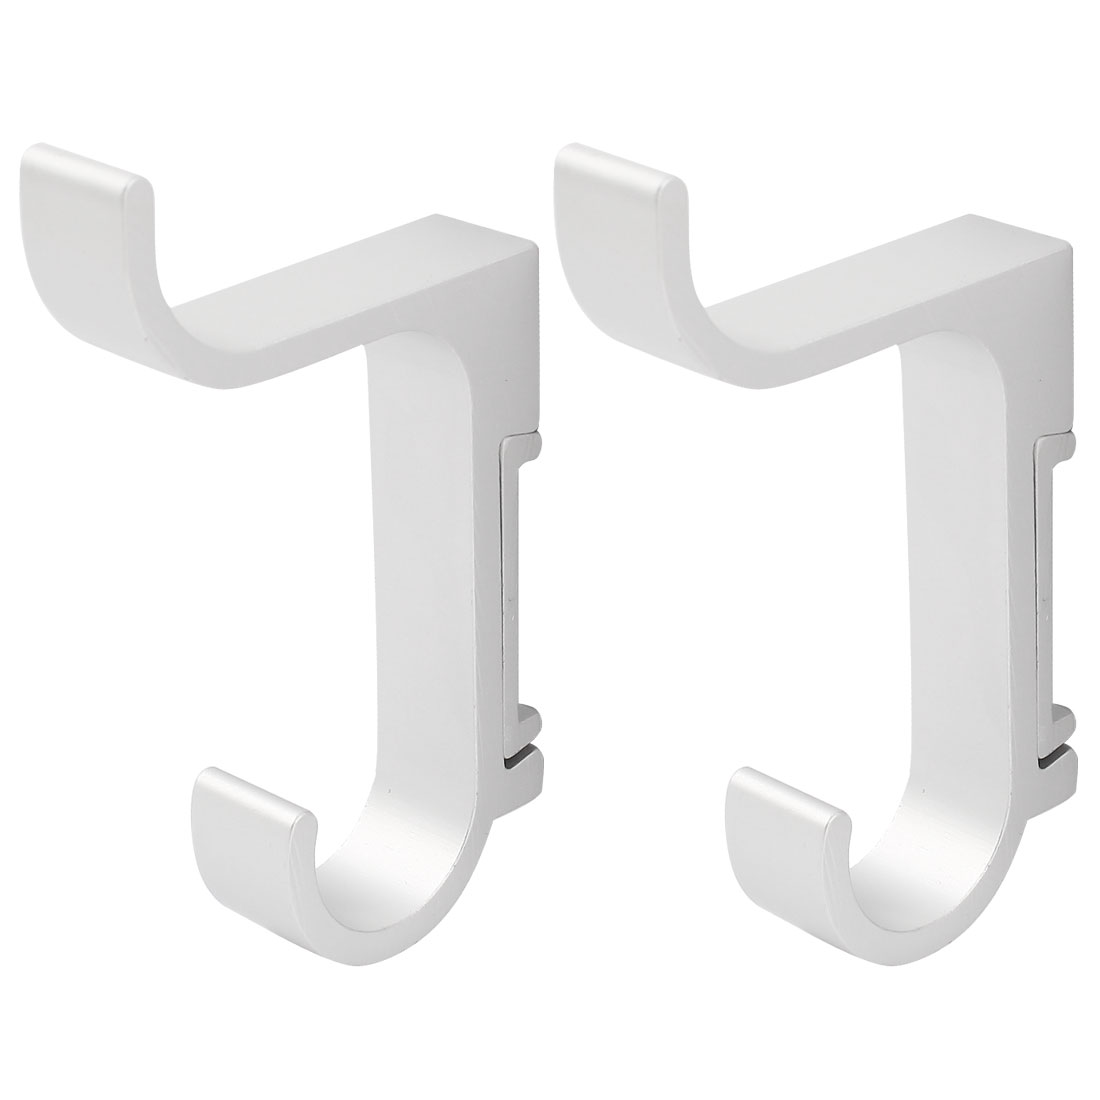 2 Pcs Aluminum Wall Mounted Coat Towel Holder Robe Hooks Hanger Silver Tone 85mm